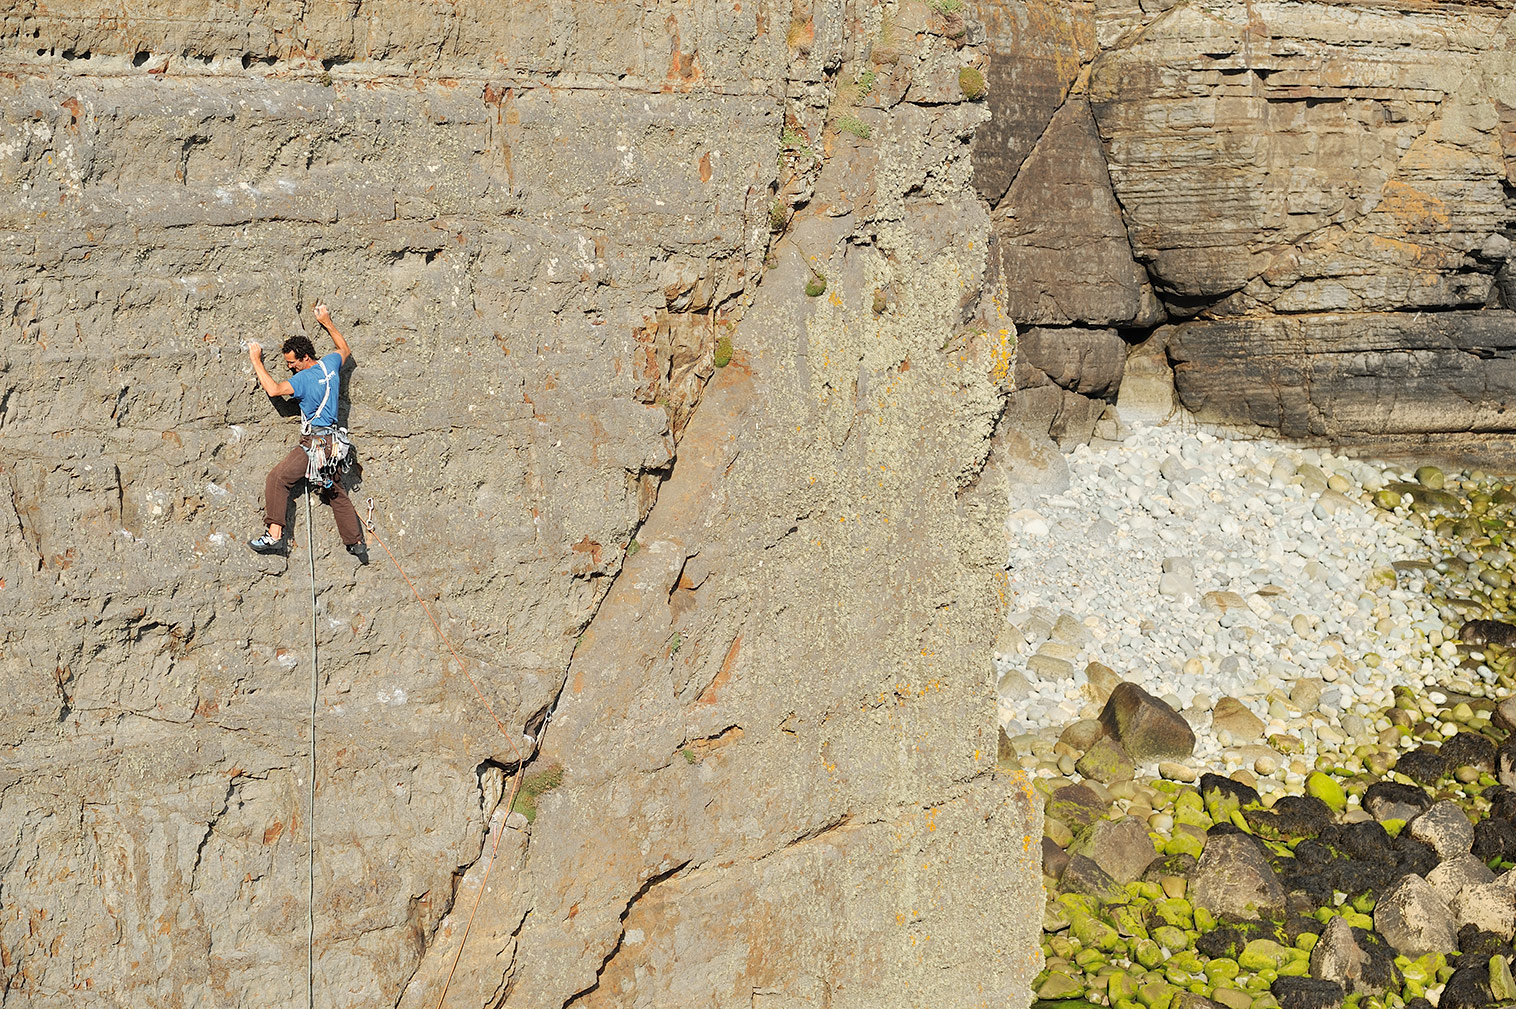 """Nick Bullock in-between the breaks of Byzantium (E4 6a), Craig Dorys, north Wales. Described in the guidebook as a """"somewhat decaying version of Right Wall in the Llanberis Pass"""". © Ray Wood"""